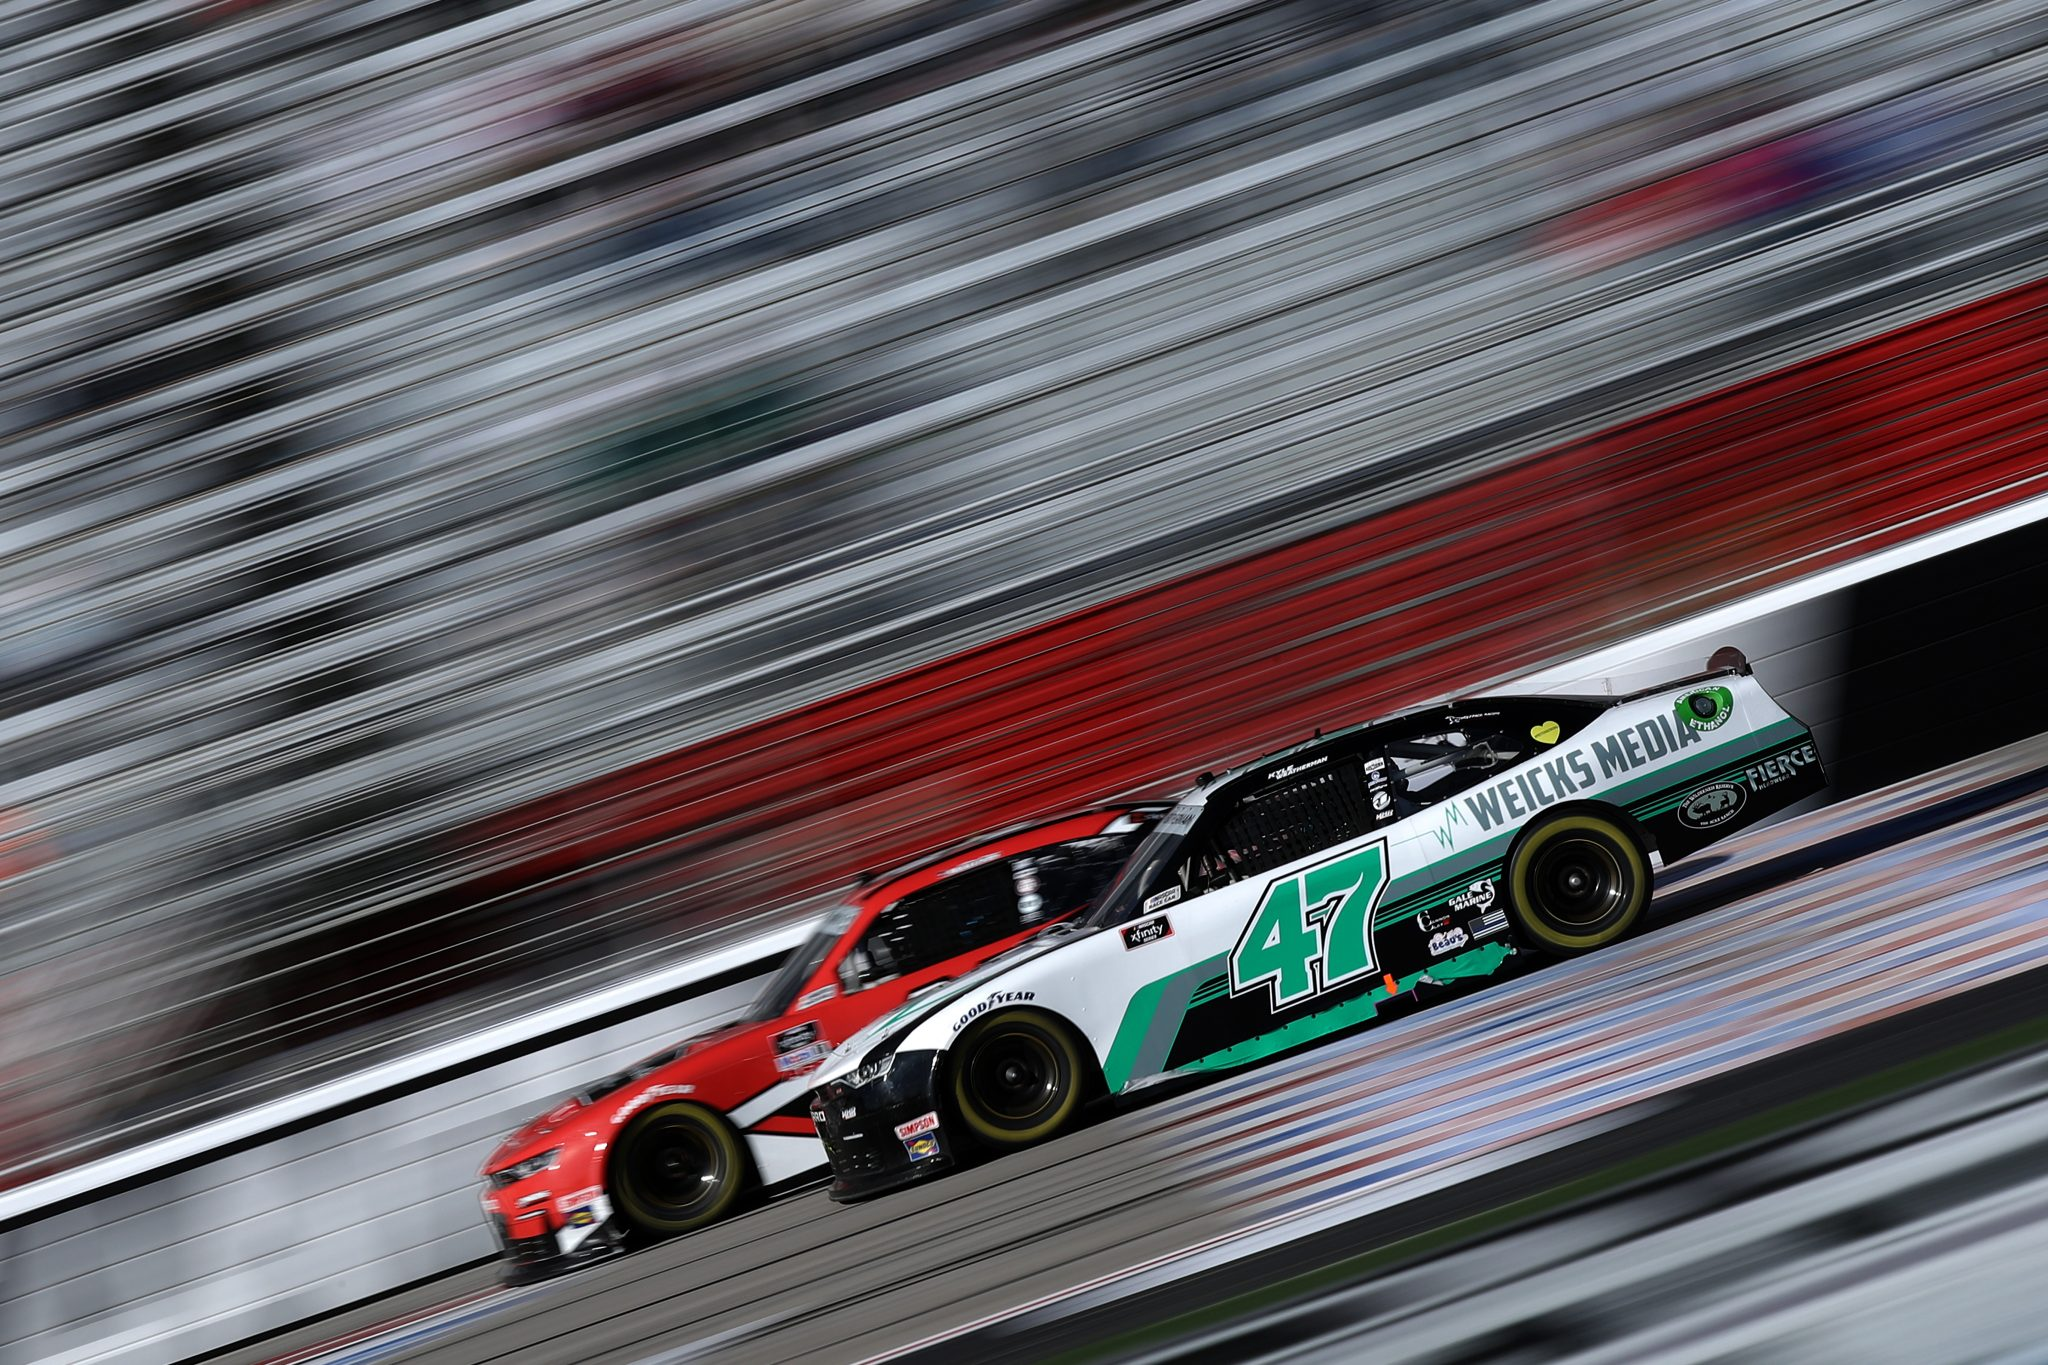 HAMPTON, GEORGIA - MARCH 20: Kyle Weatherman, driver of the #47 Weicks Media Chevrolet, drives during the NASCAR Xfinity Series EchoPark 250 at Atlanta Motor Speedway on March 20, 2021 in Hampton, Georgia. (Photo by Sean Gardner/Getty Images) | Getty Images